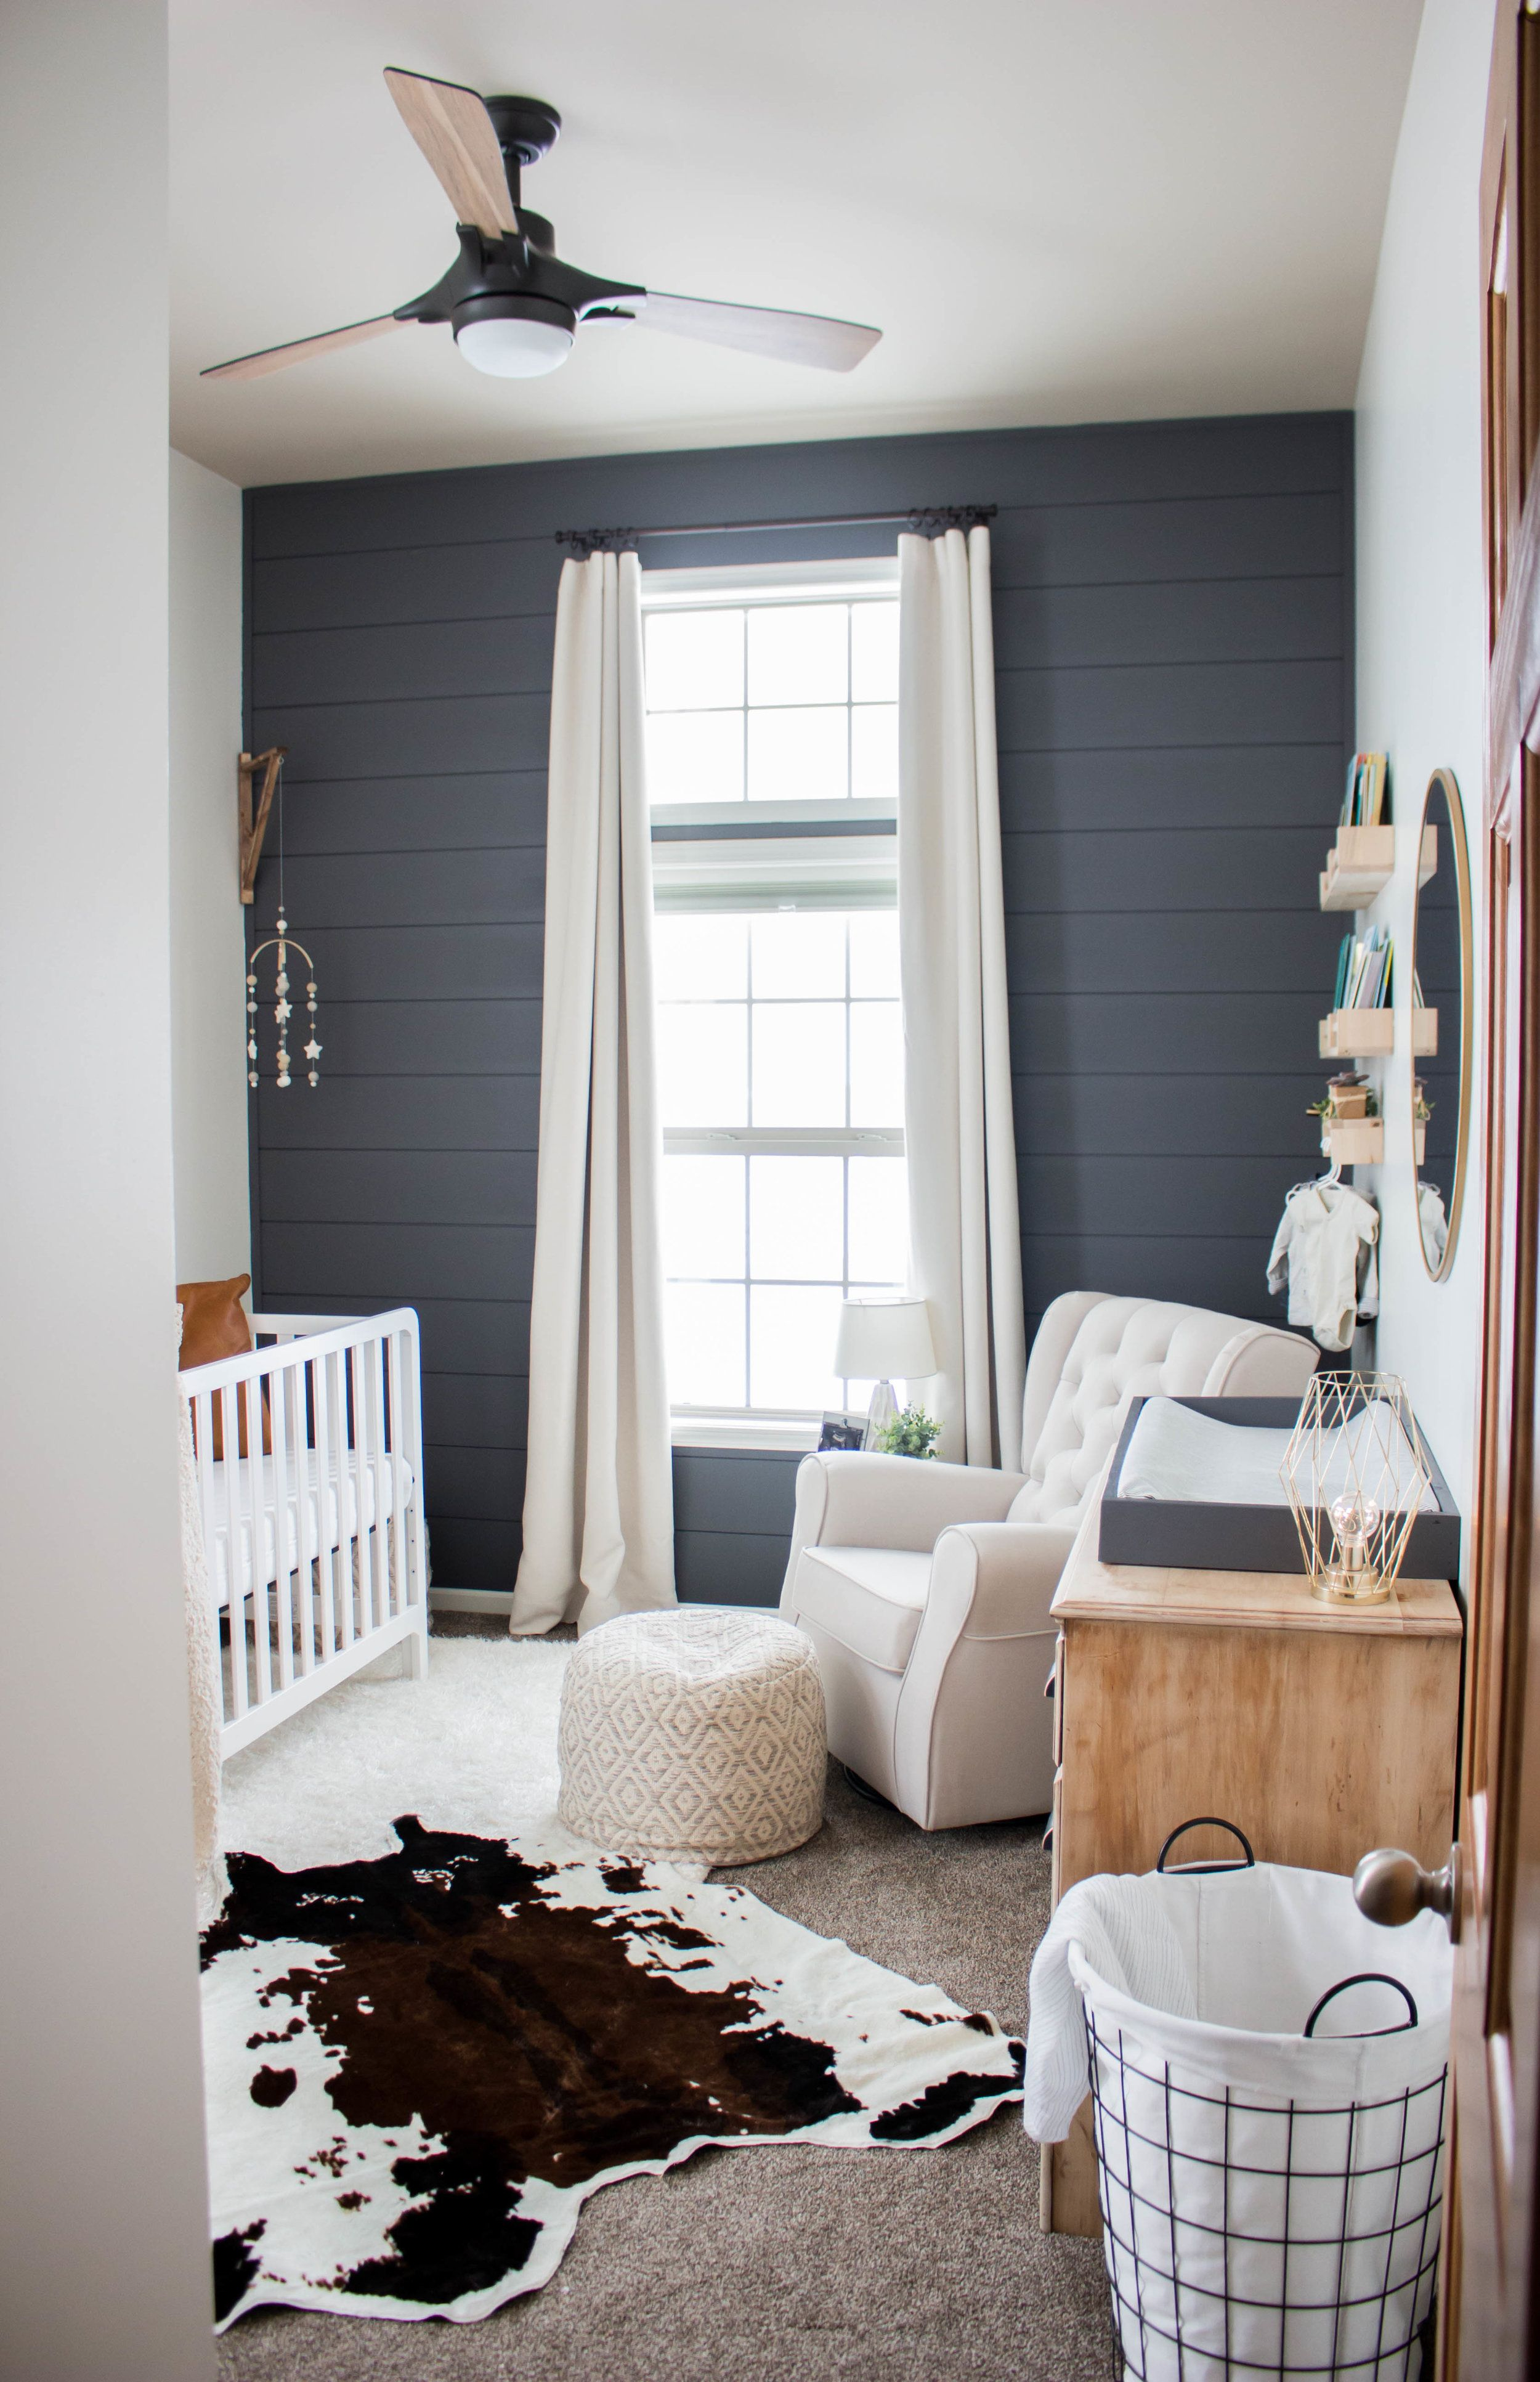 Baby Boy Nursery With Modern Farm House Vibes Gray Accent Wall Really Make The White Crib And Rocker Stand Out